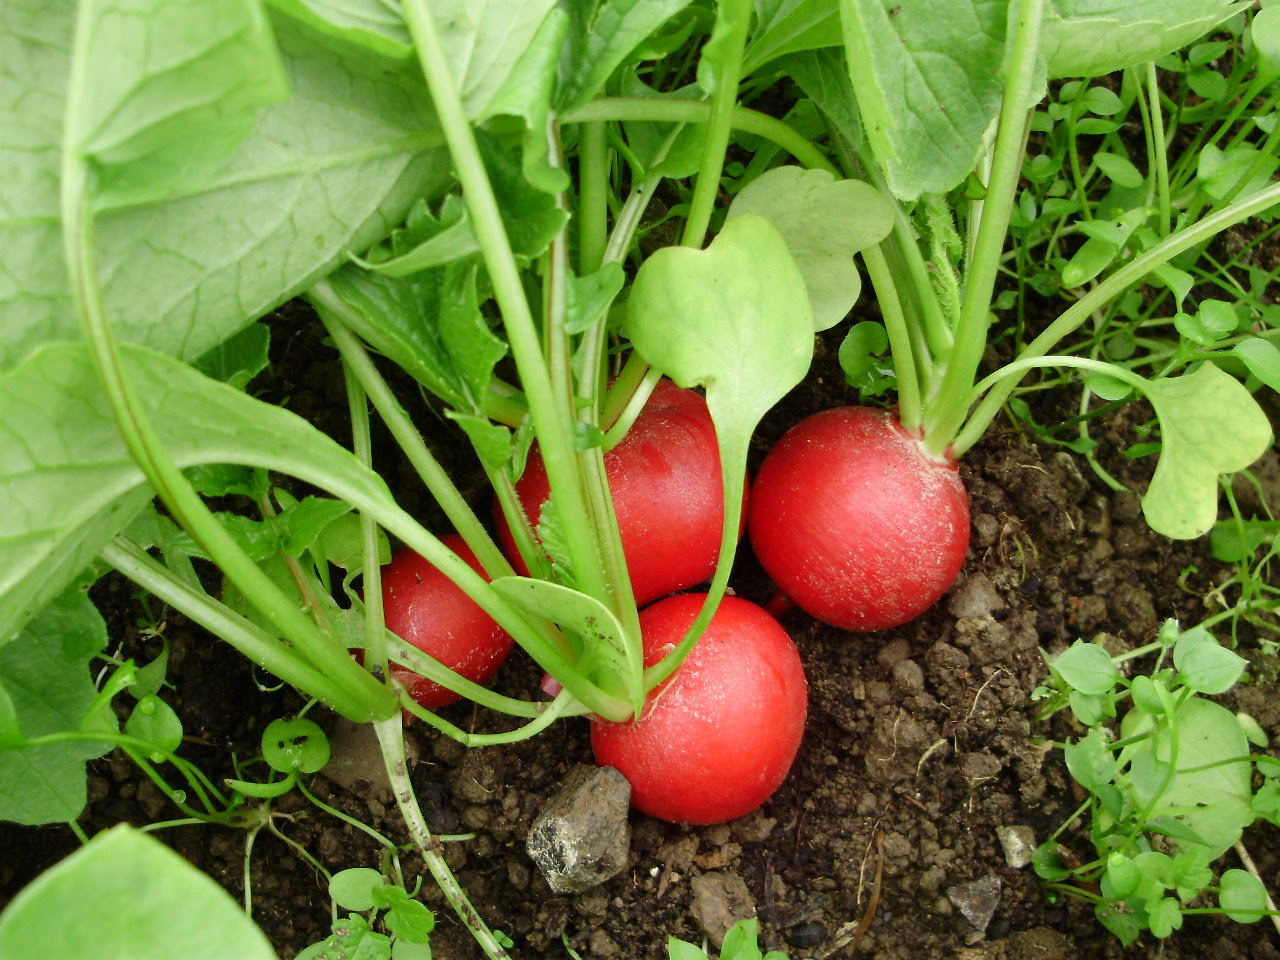 Radish 'Rudi' crunchy, delicious & easy to grow